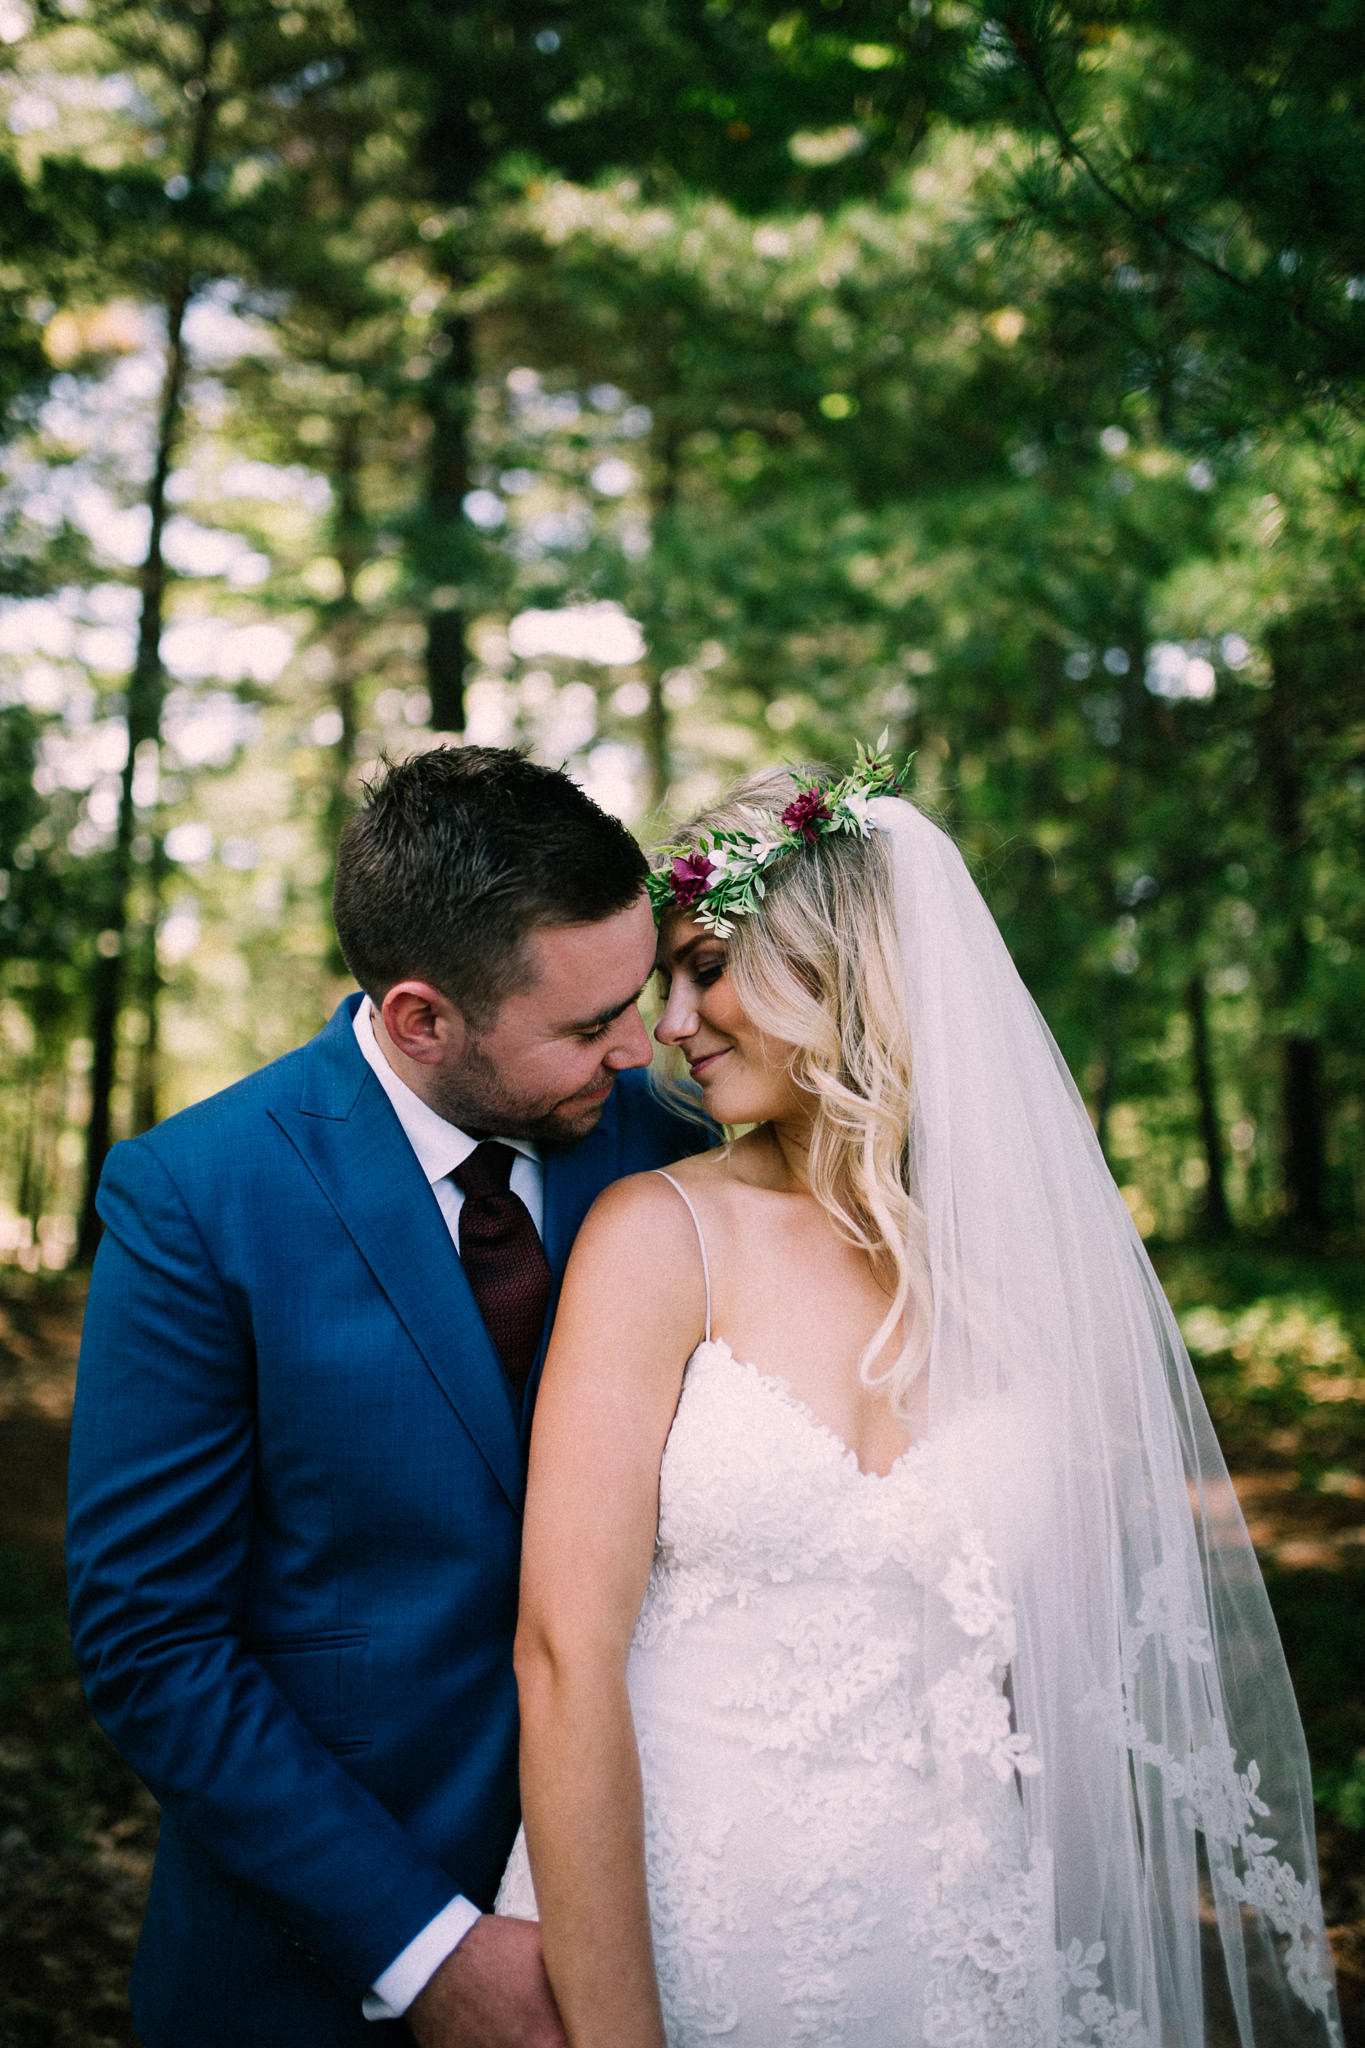 Muskoka lakeside wedding at Port Cunnington Lodge by Max Wong Photo (17)